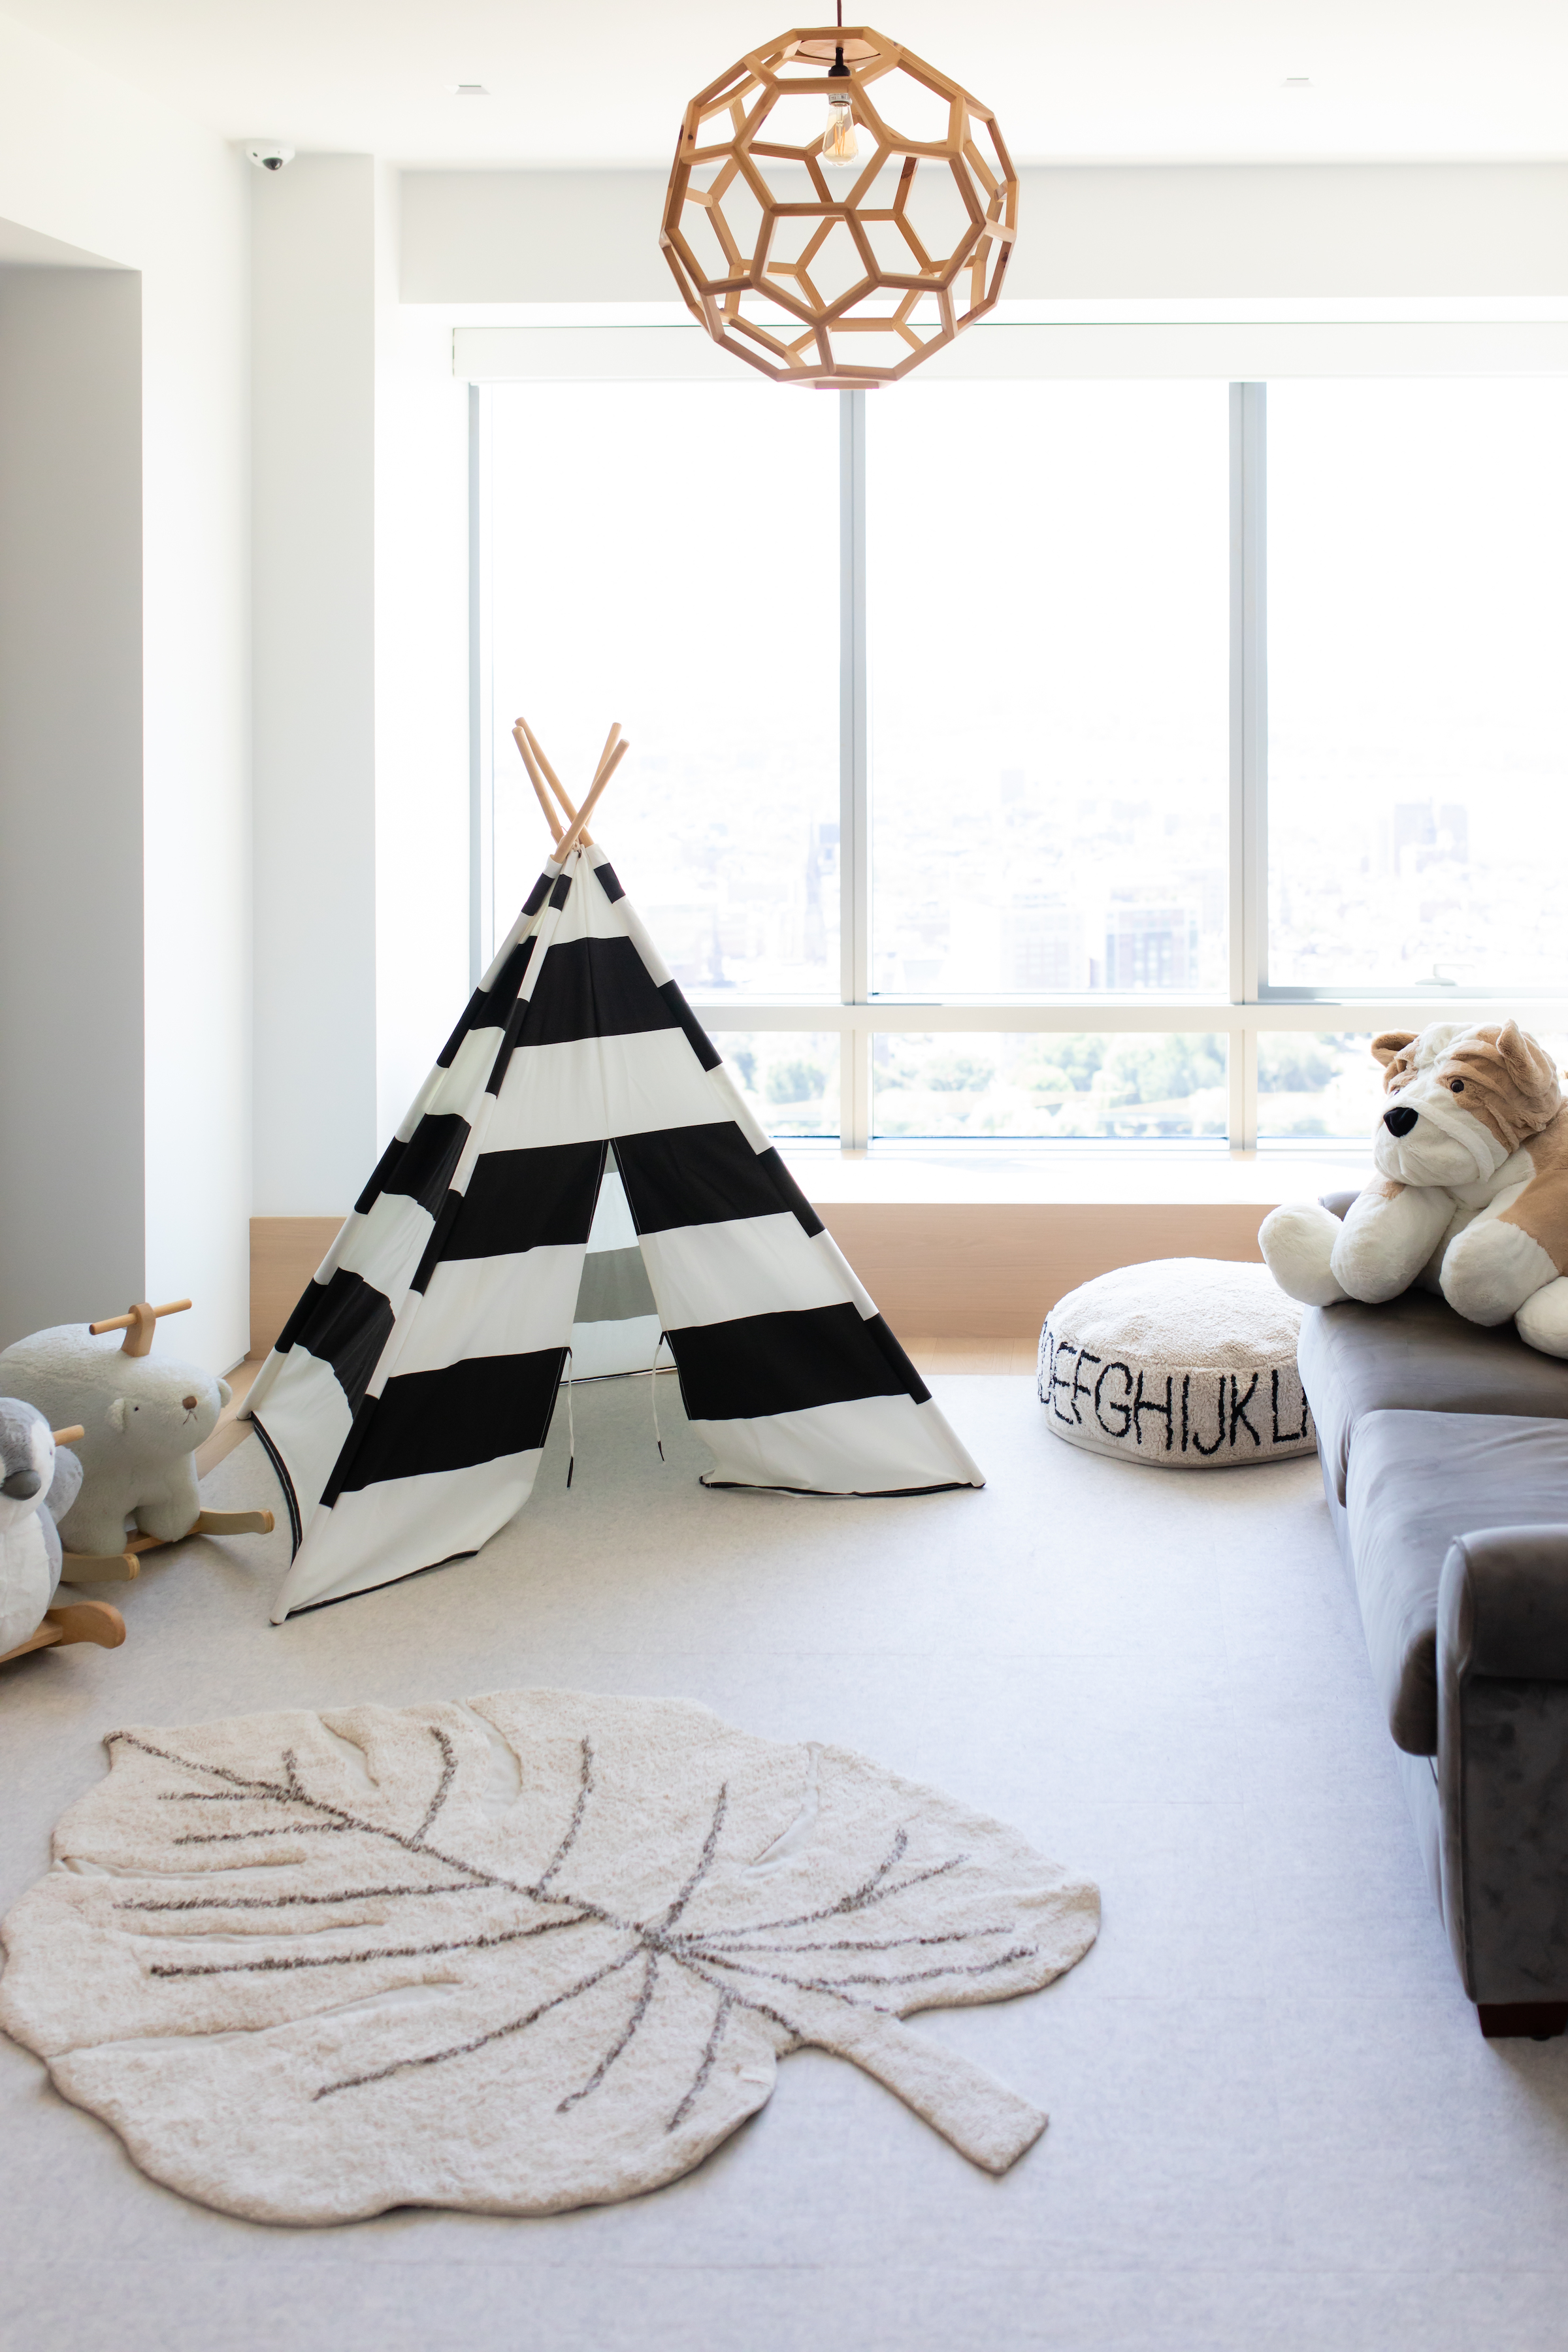 Organized kids' room with neutral decorations.